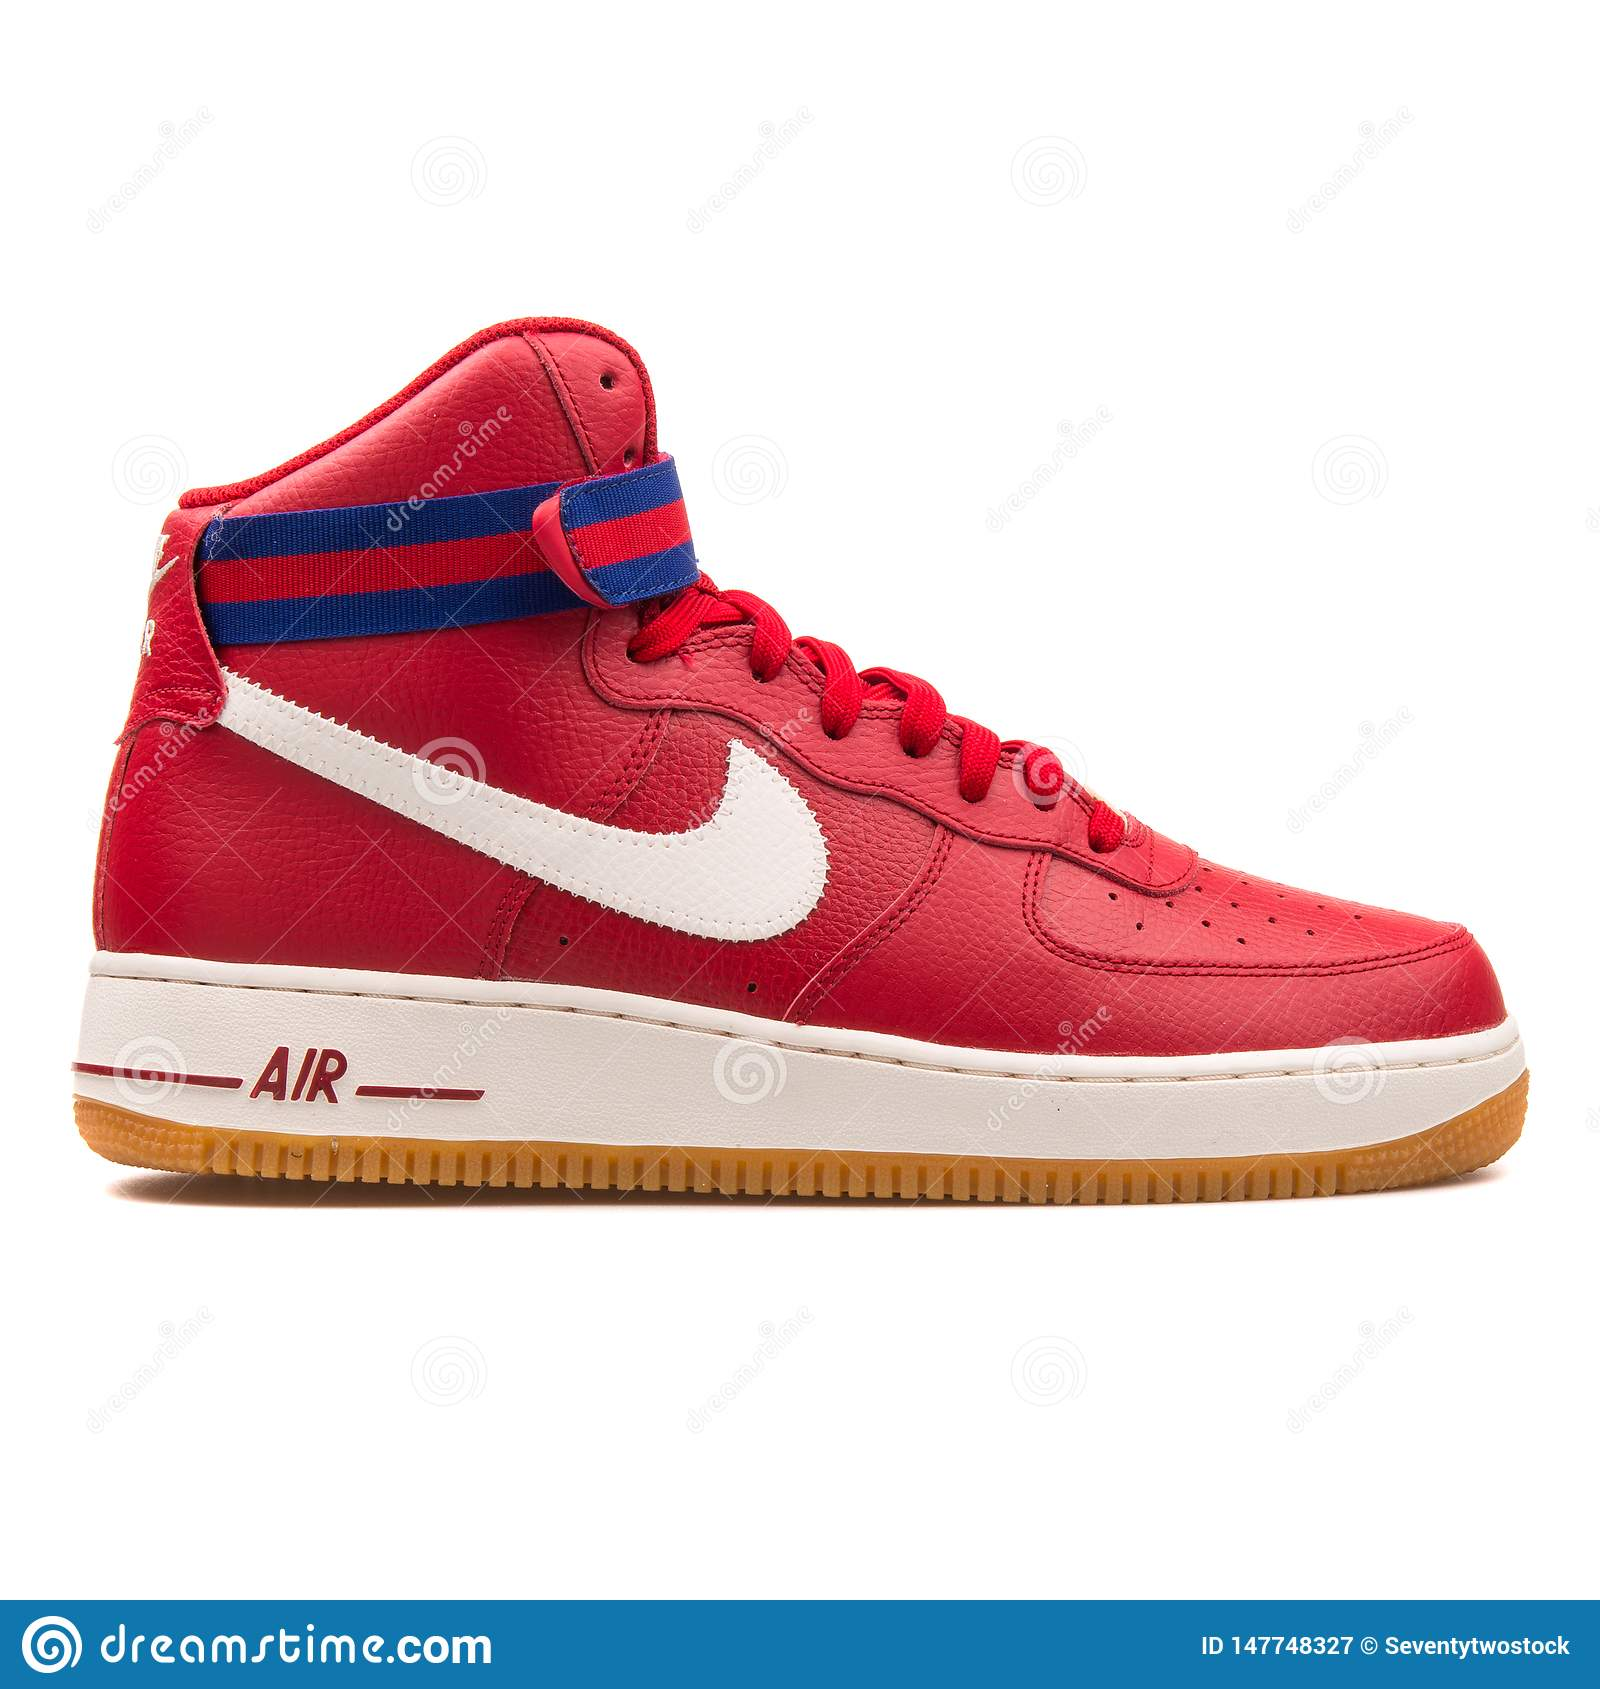 Nike Air Force 1 High 07 Red And Blue Sneaker Editorial